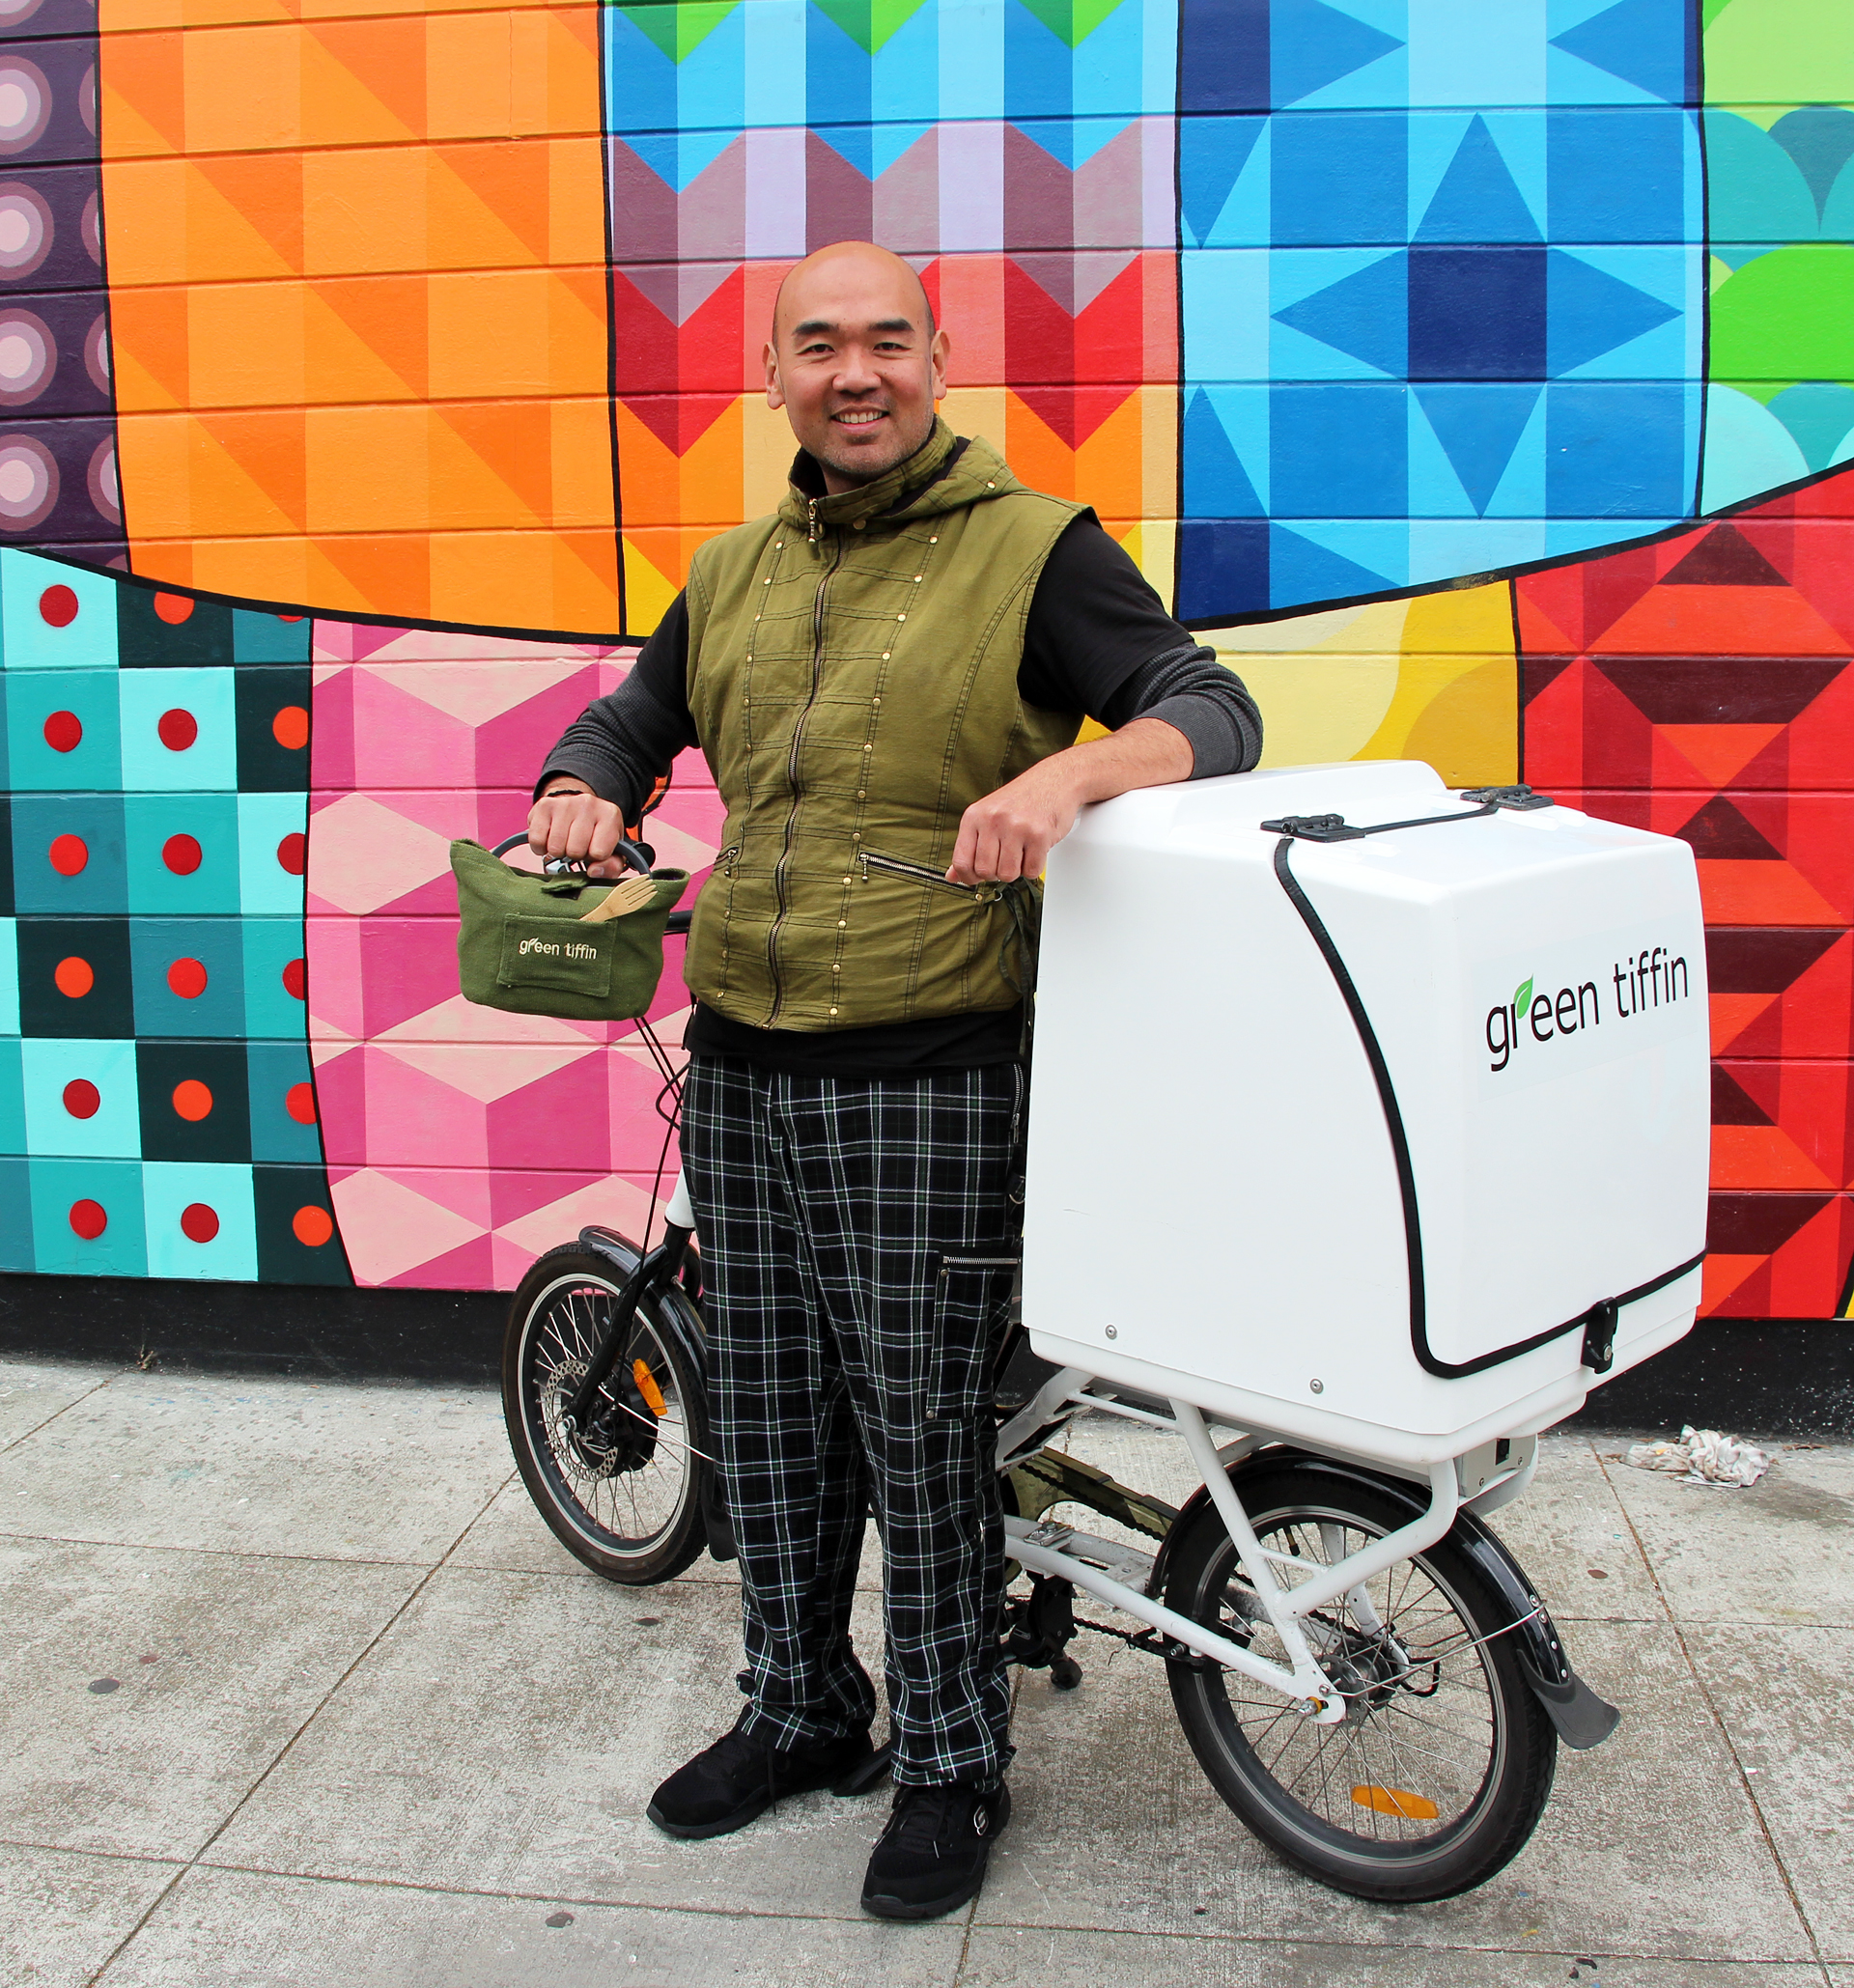 Adrian Tay, founder/owner of Green Tiffin with electric delivery bike and tiffin meal